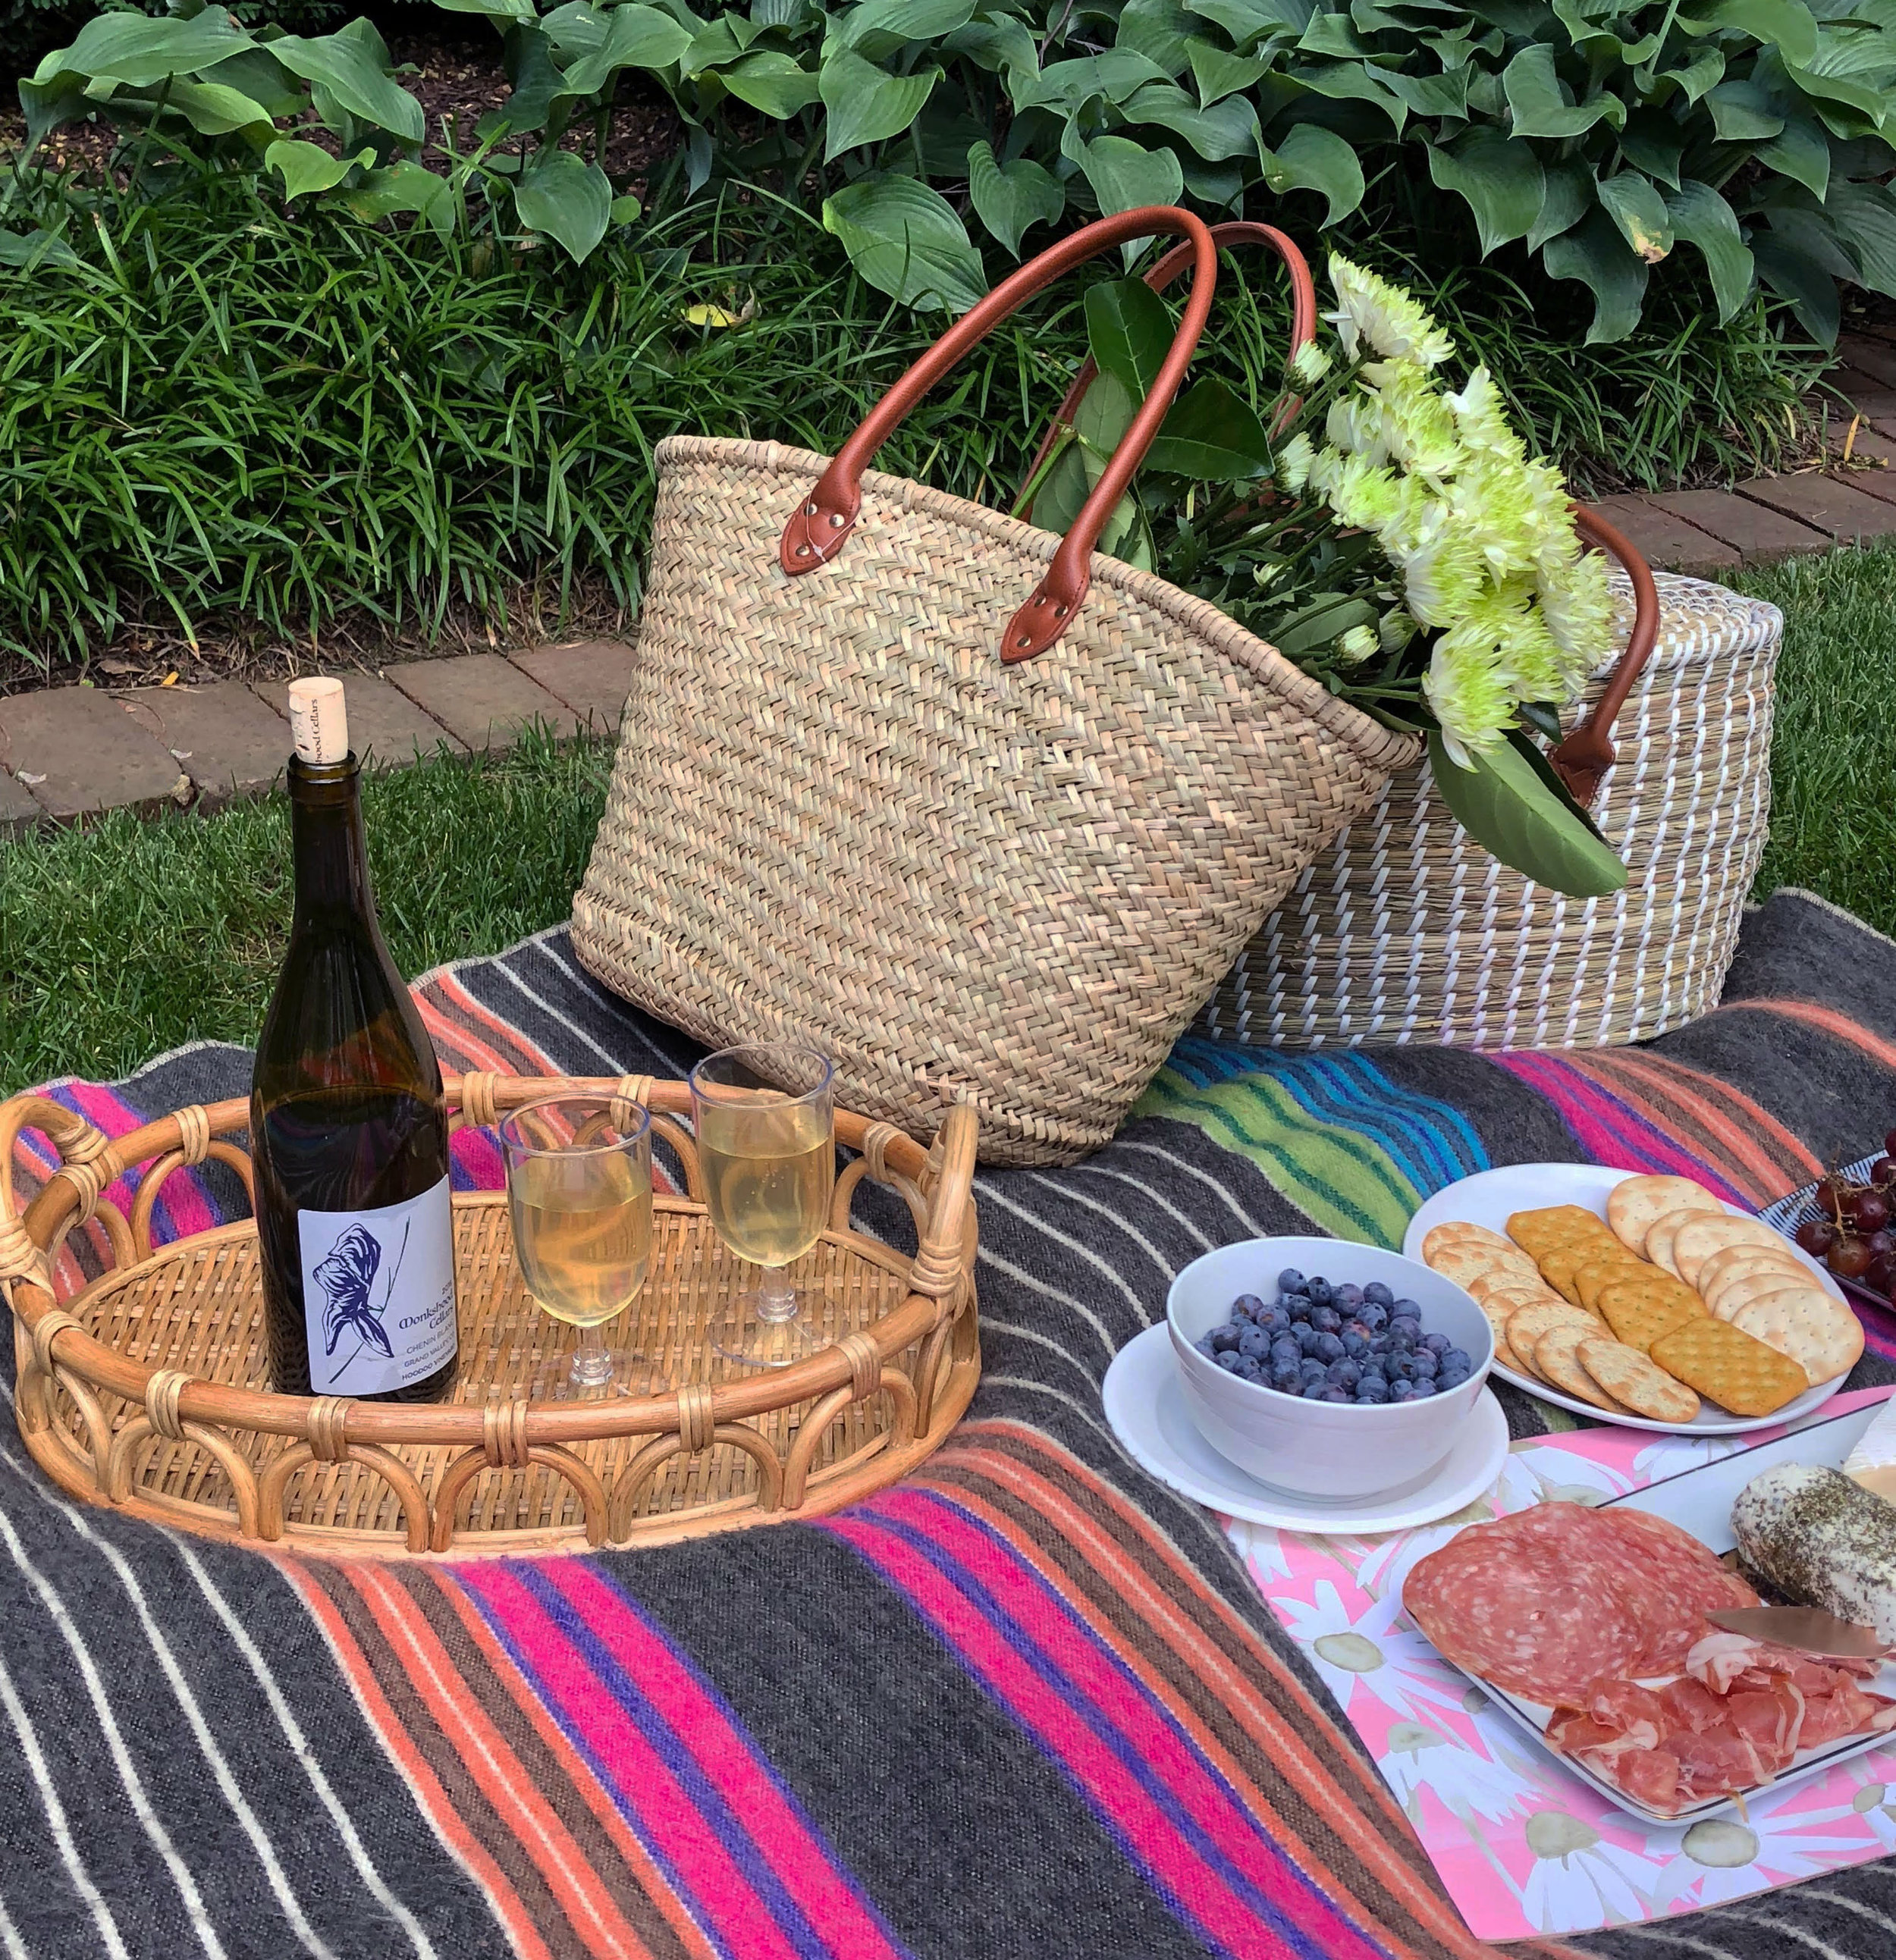 lucy-grymes-picture-perfect-picnic-drink-trays.jpg